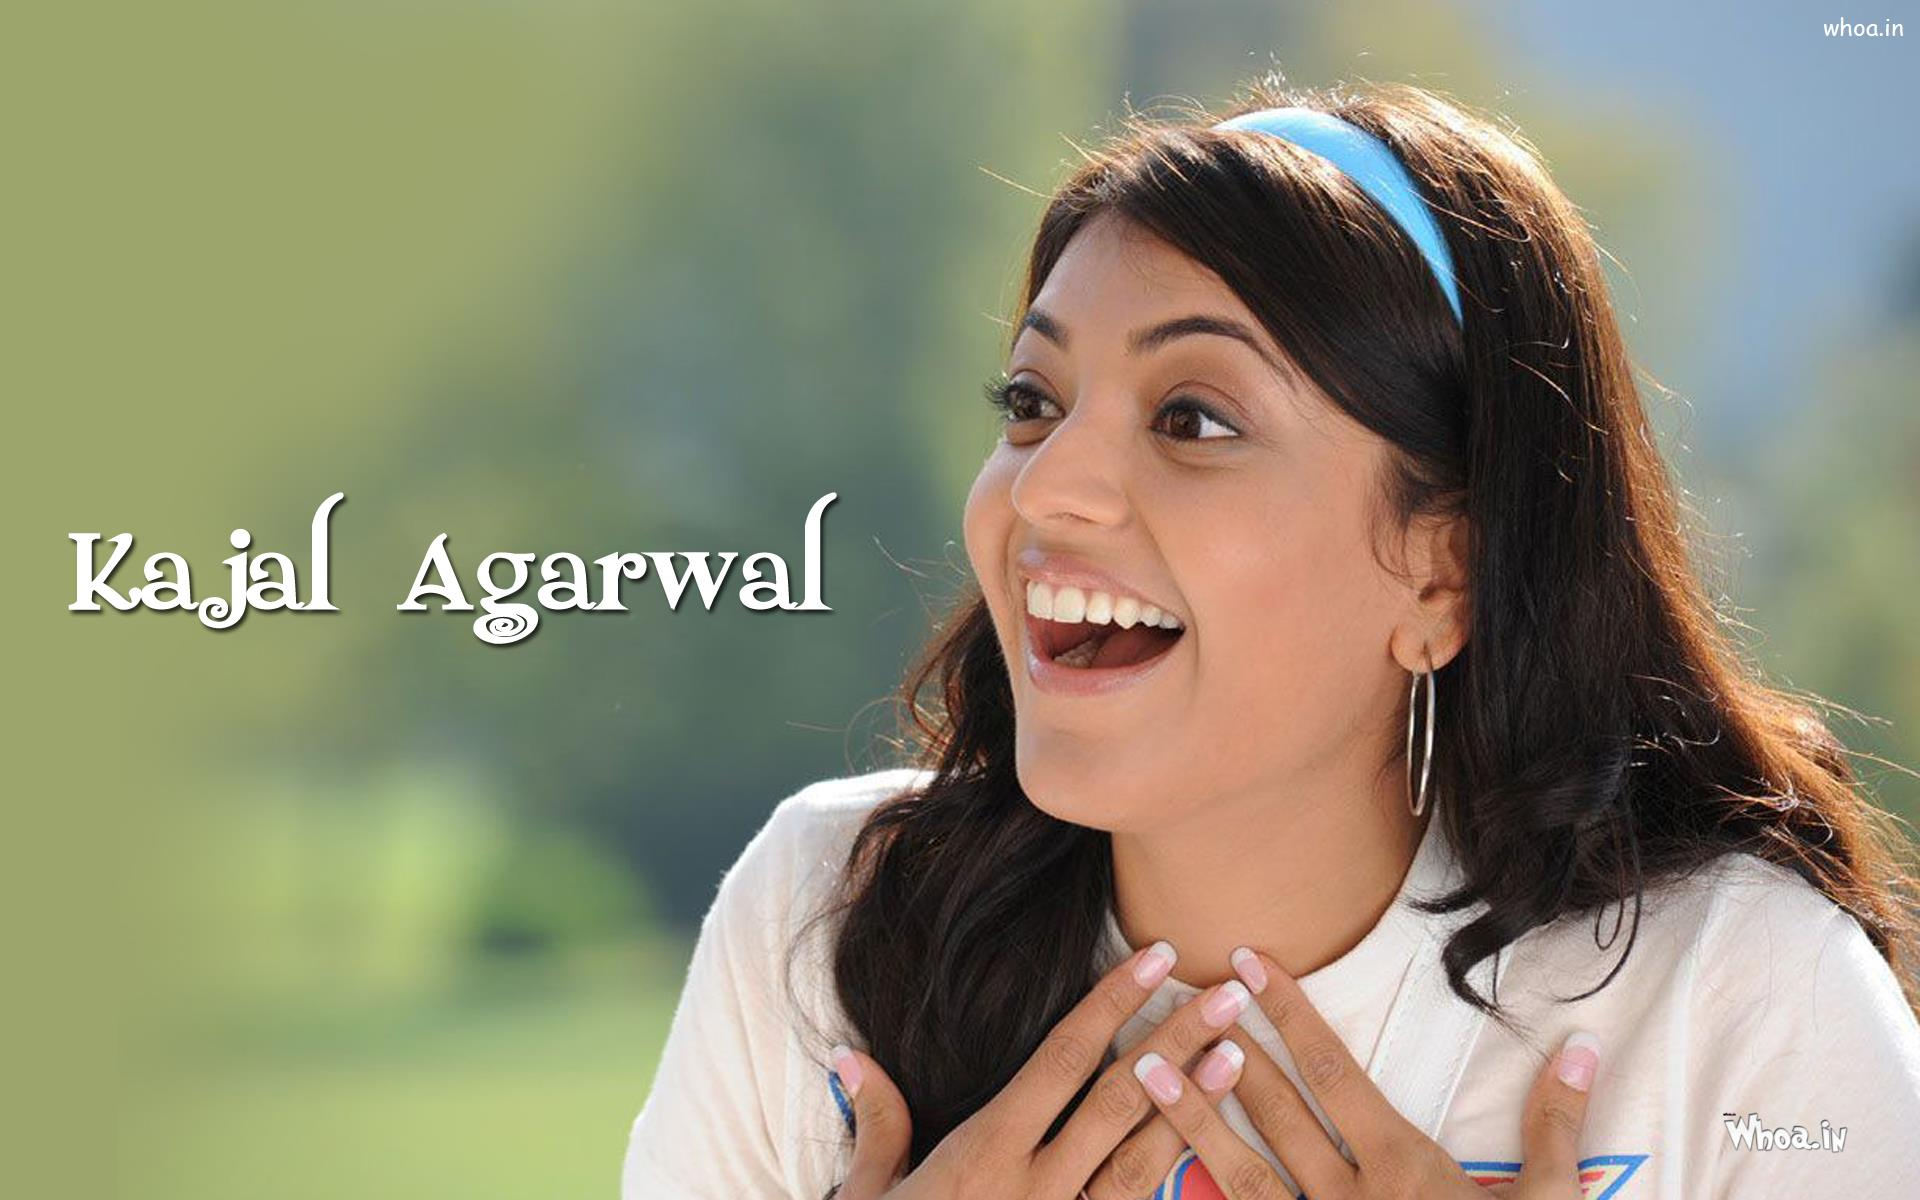 kajal agarwal face close up hd wallpaper